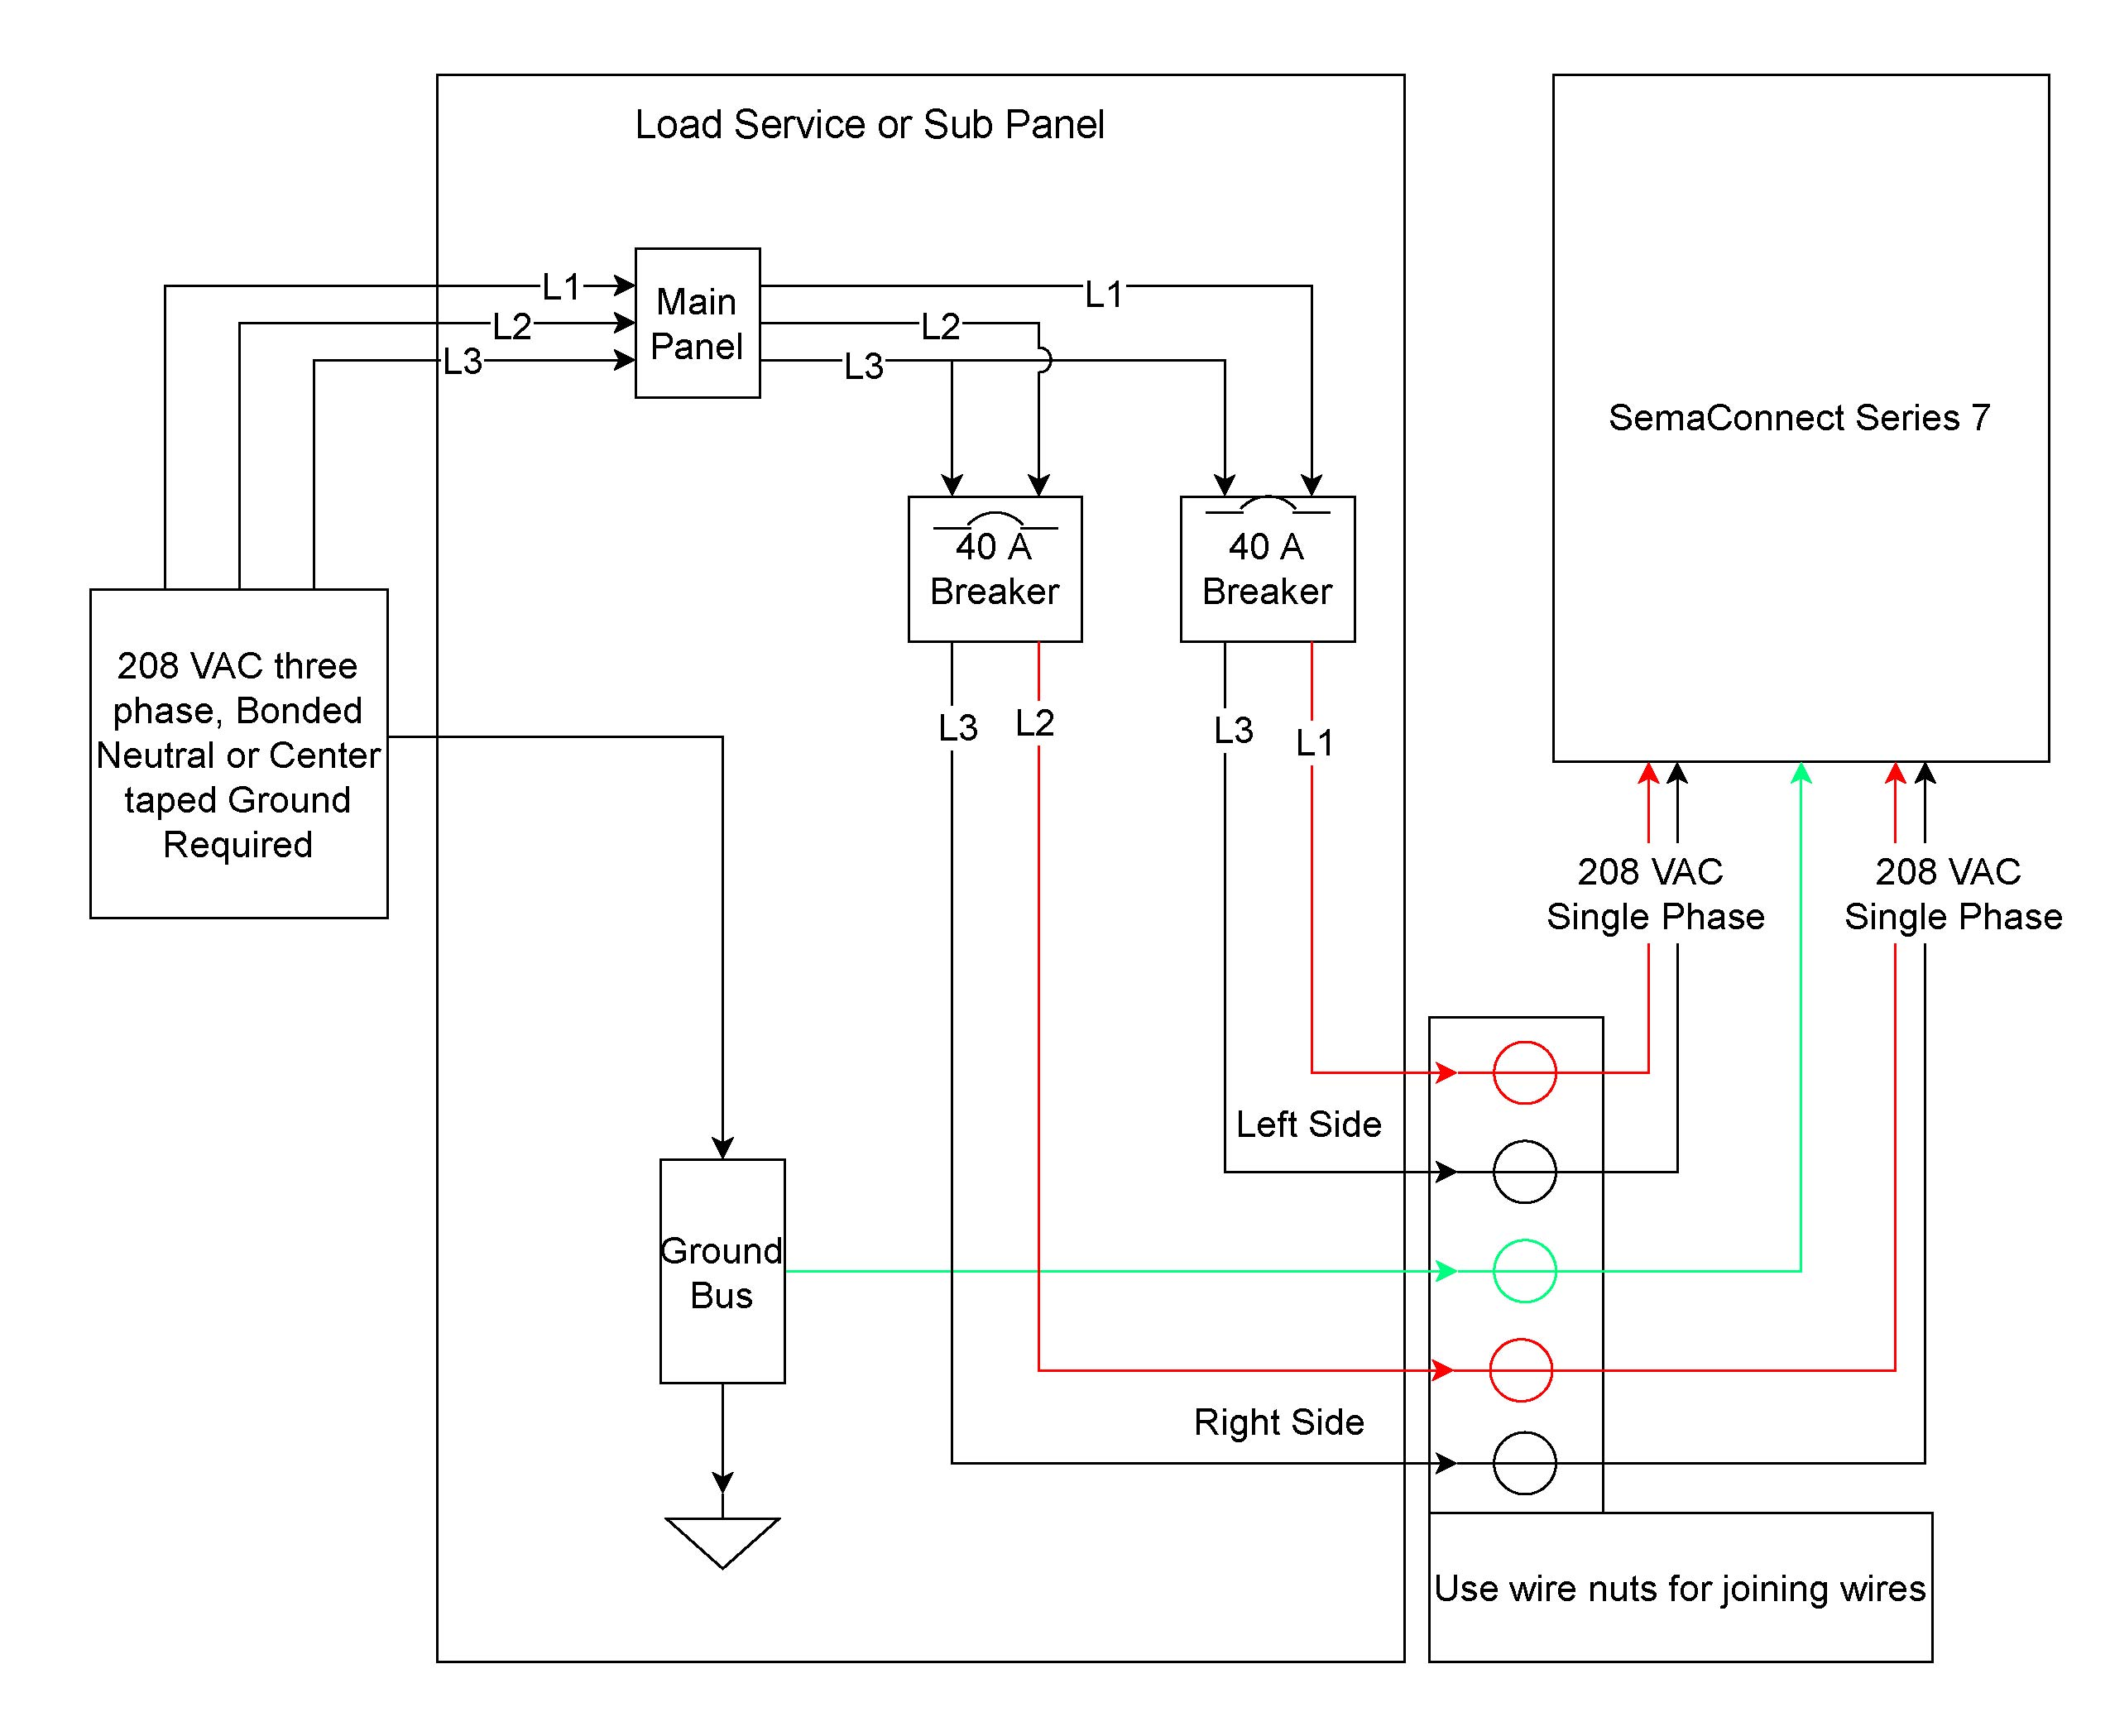 1984 chevy p30 step van wiring diagram - wiring diagram schematic  winner-total-a - winner-total-a.aliceviola.it  aliceviola.it